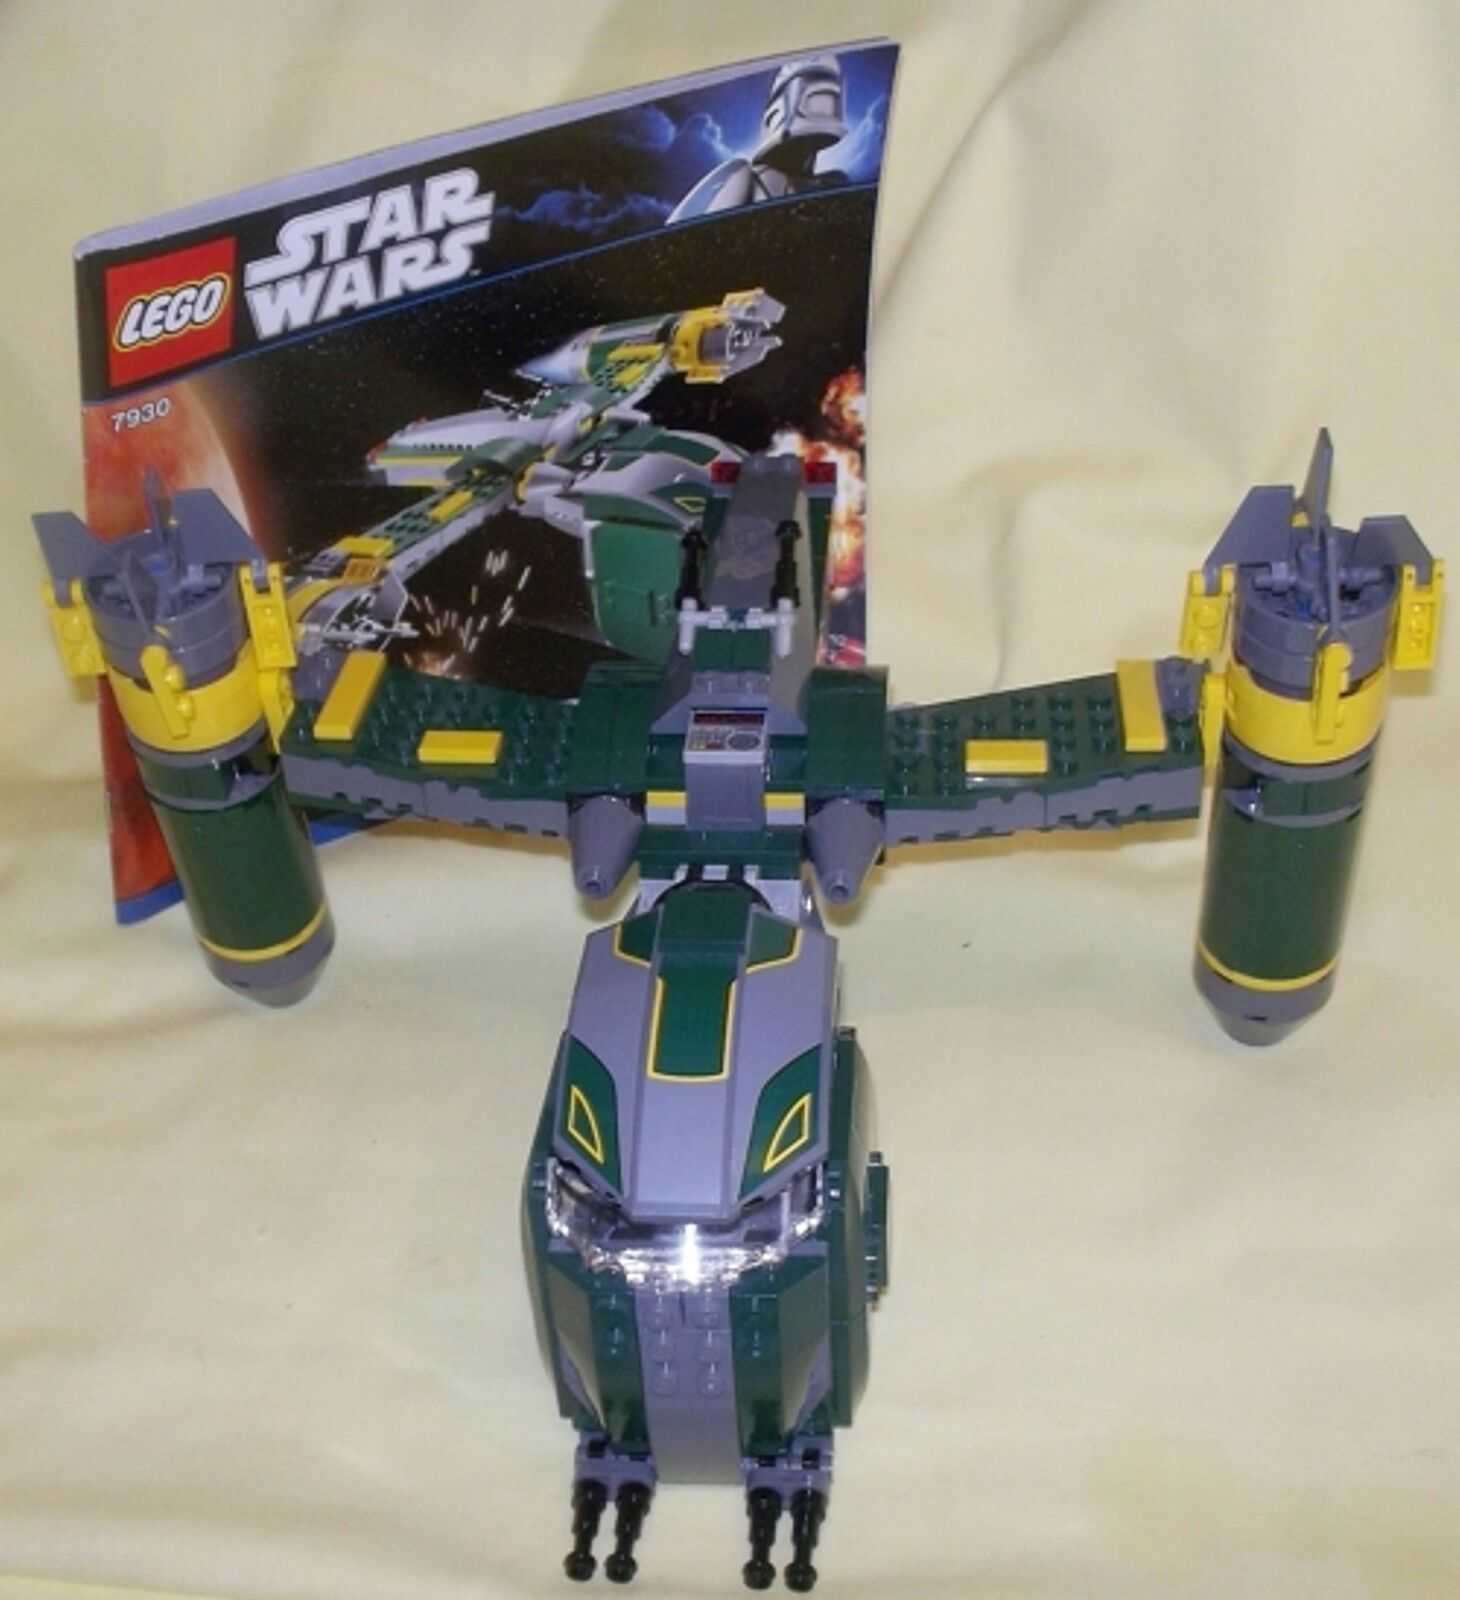 Lego Star Wars Bounty Hunter assault hélicoptère de combat 3765